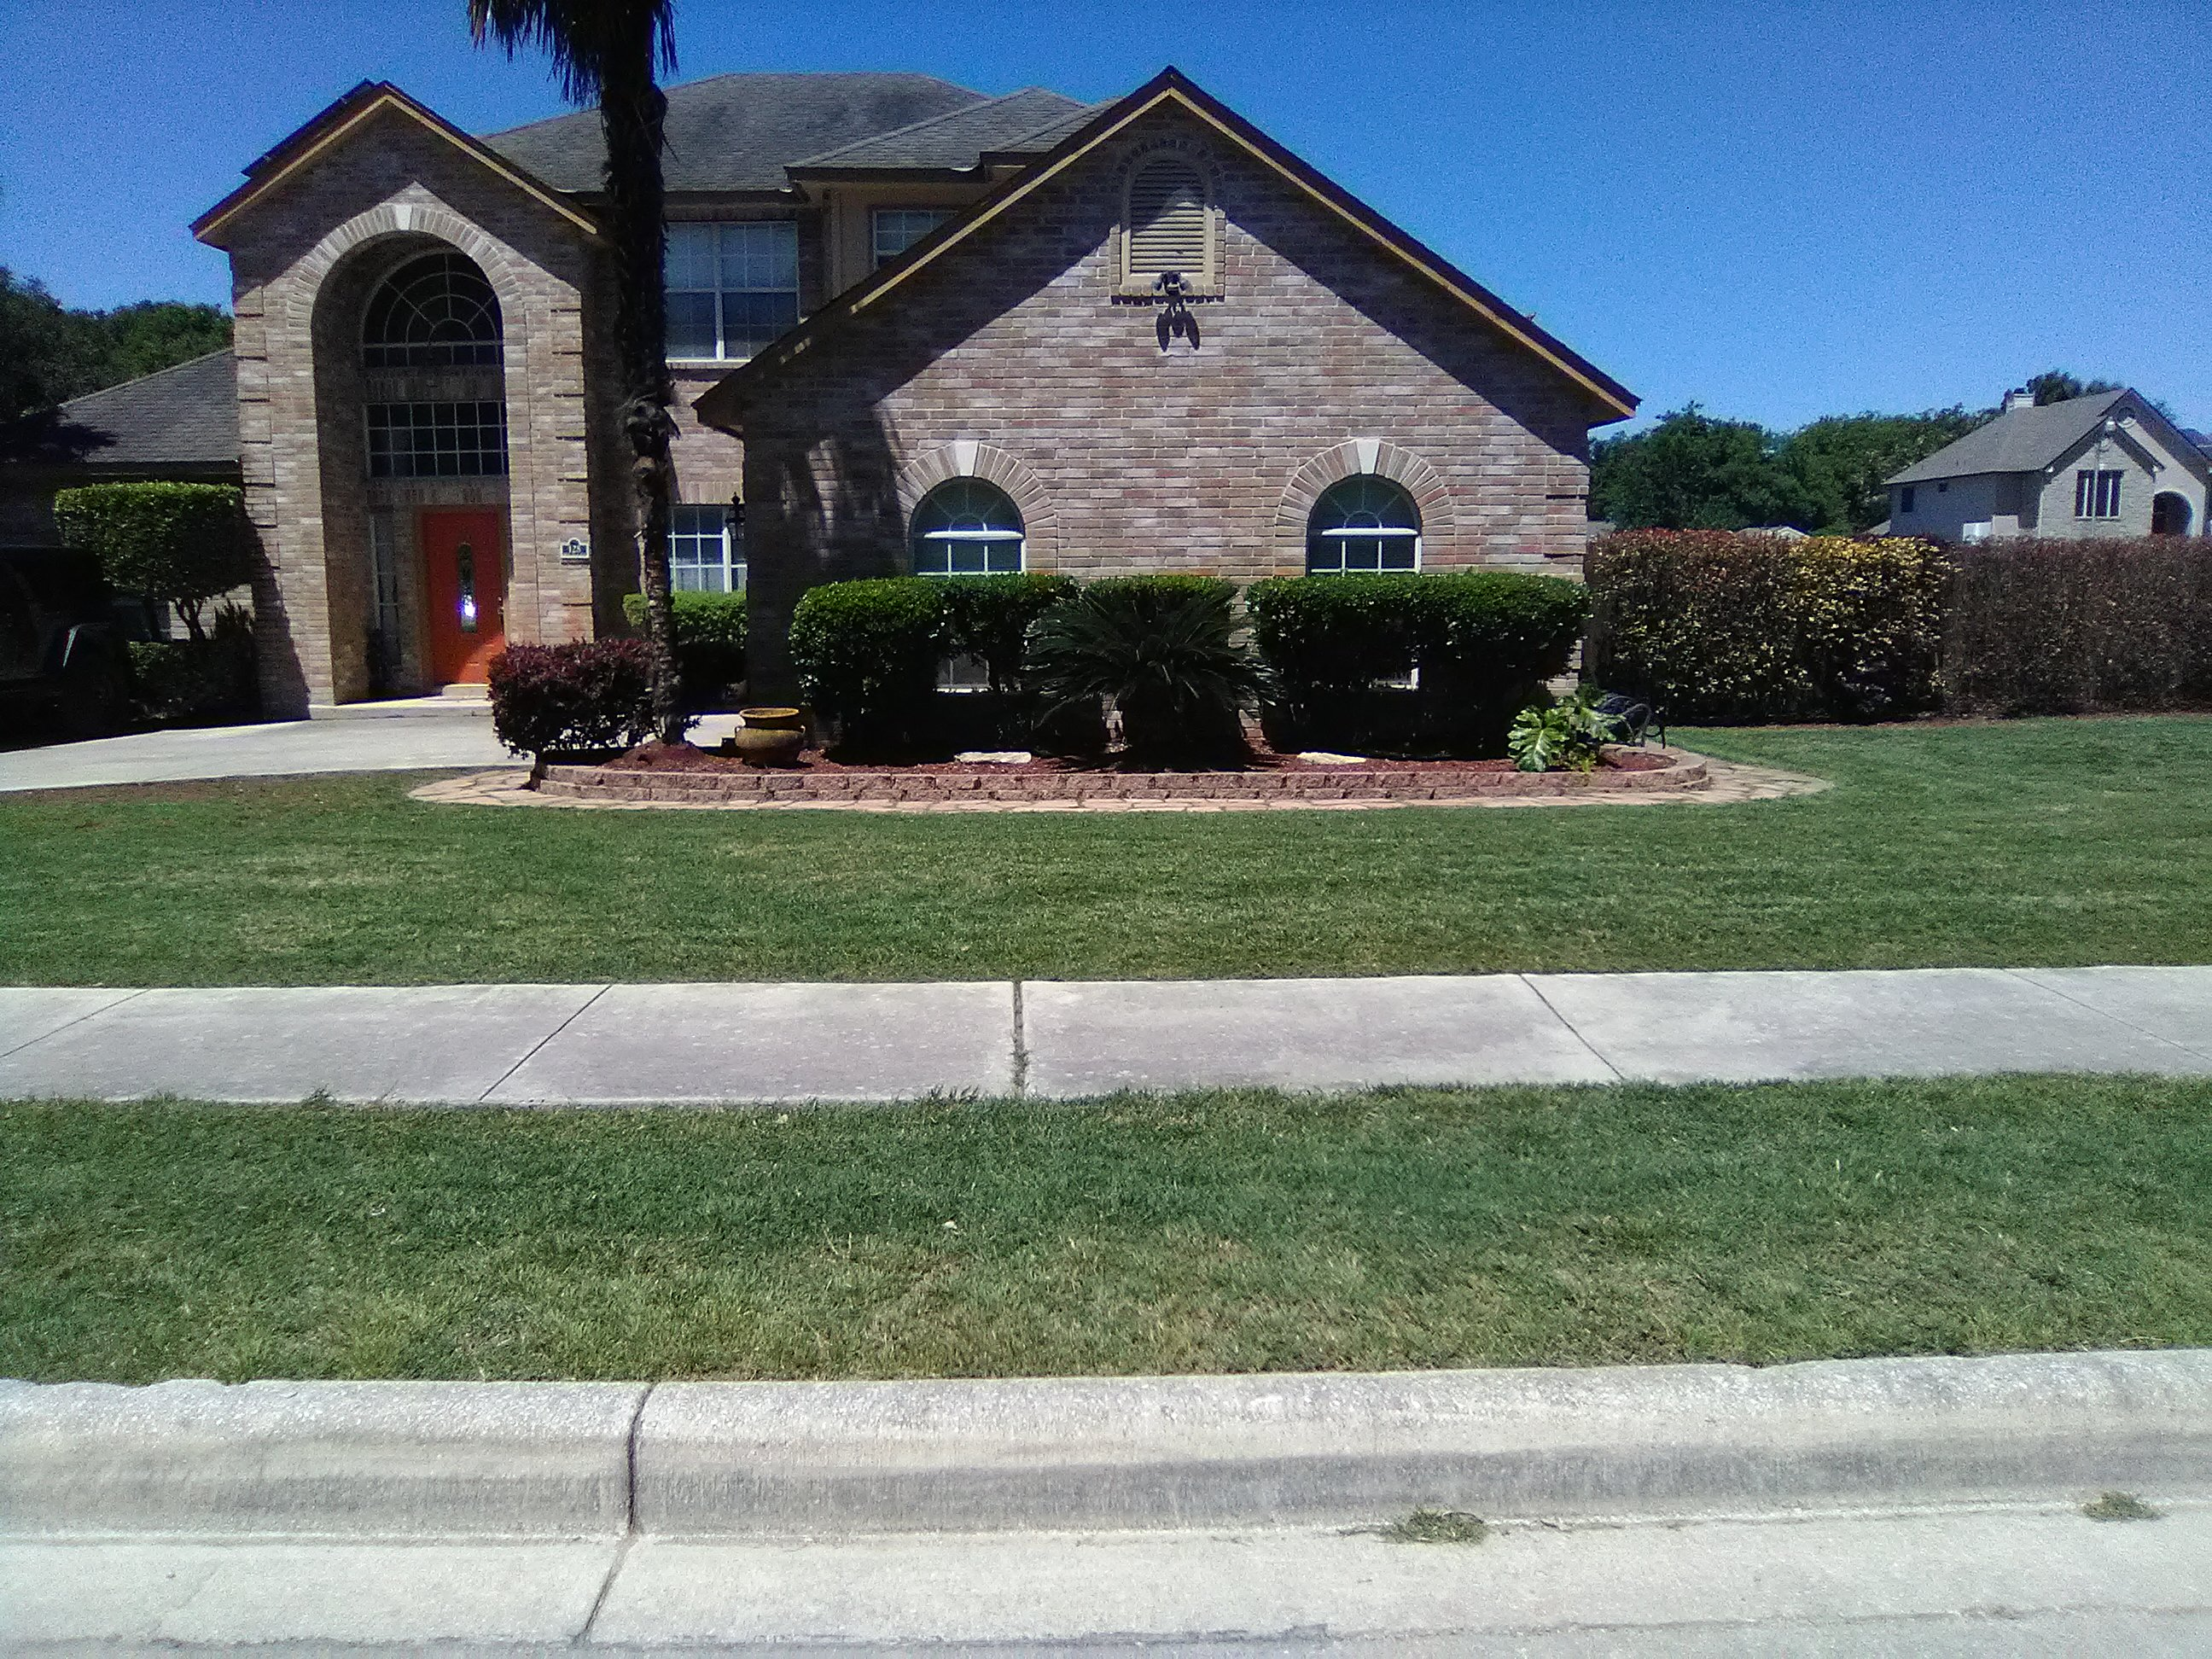 Yard mowing company in San Antonio, TX, 78221